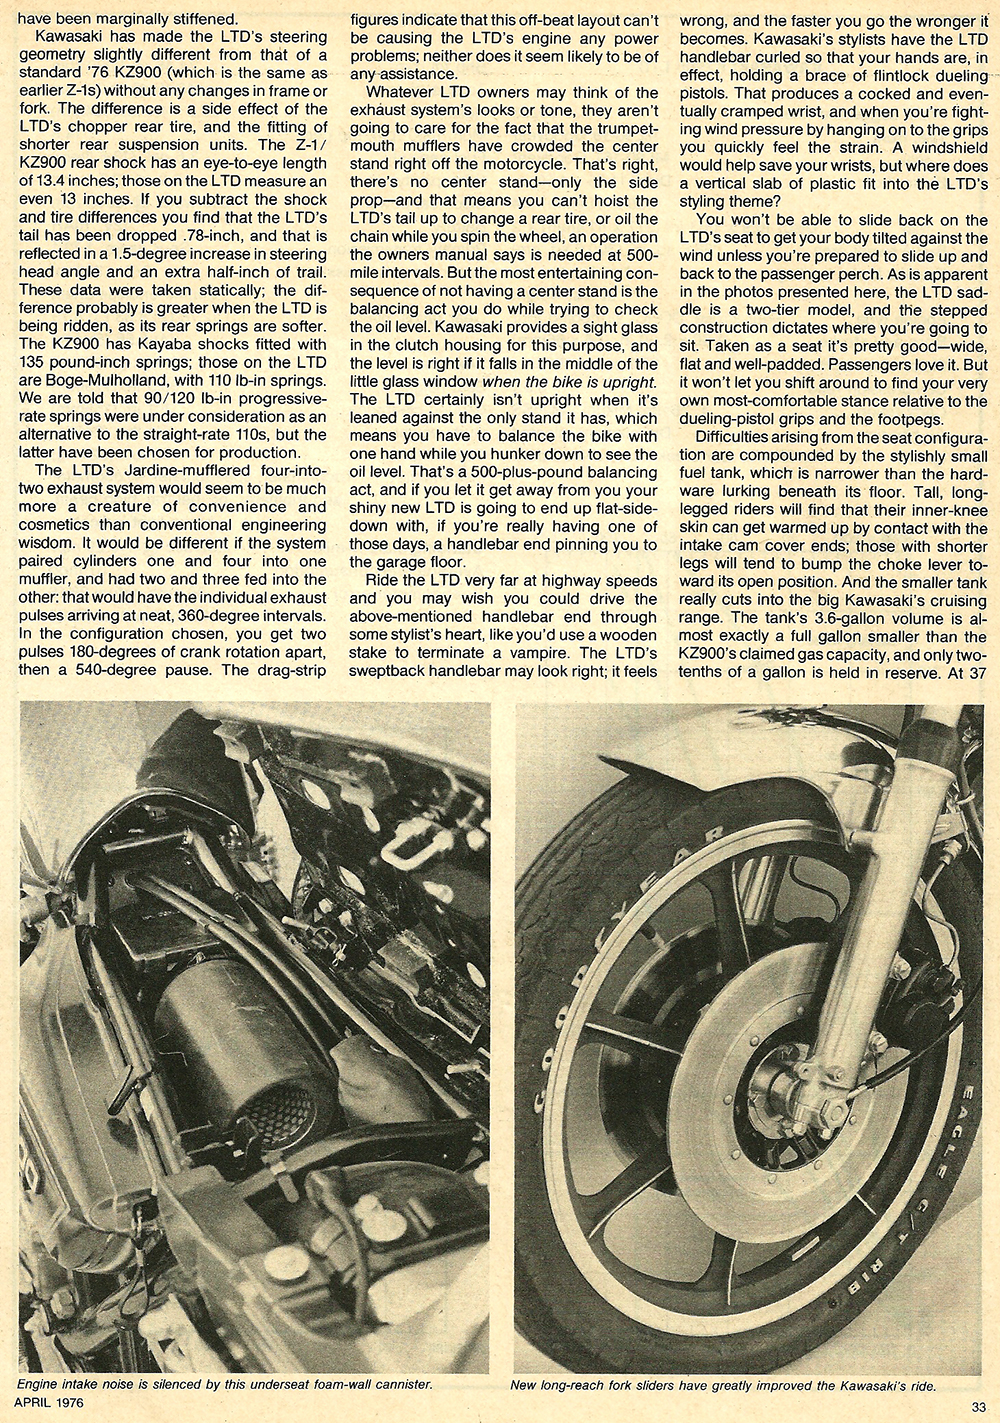 1976 Kawasaki KZ900 LTD road test 4.jpg